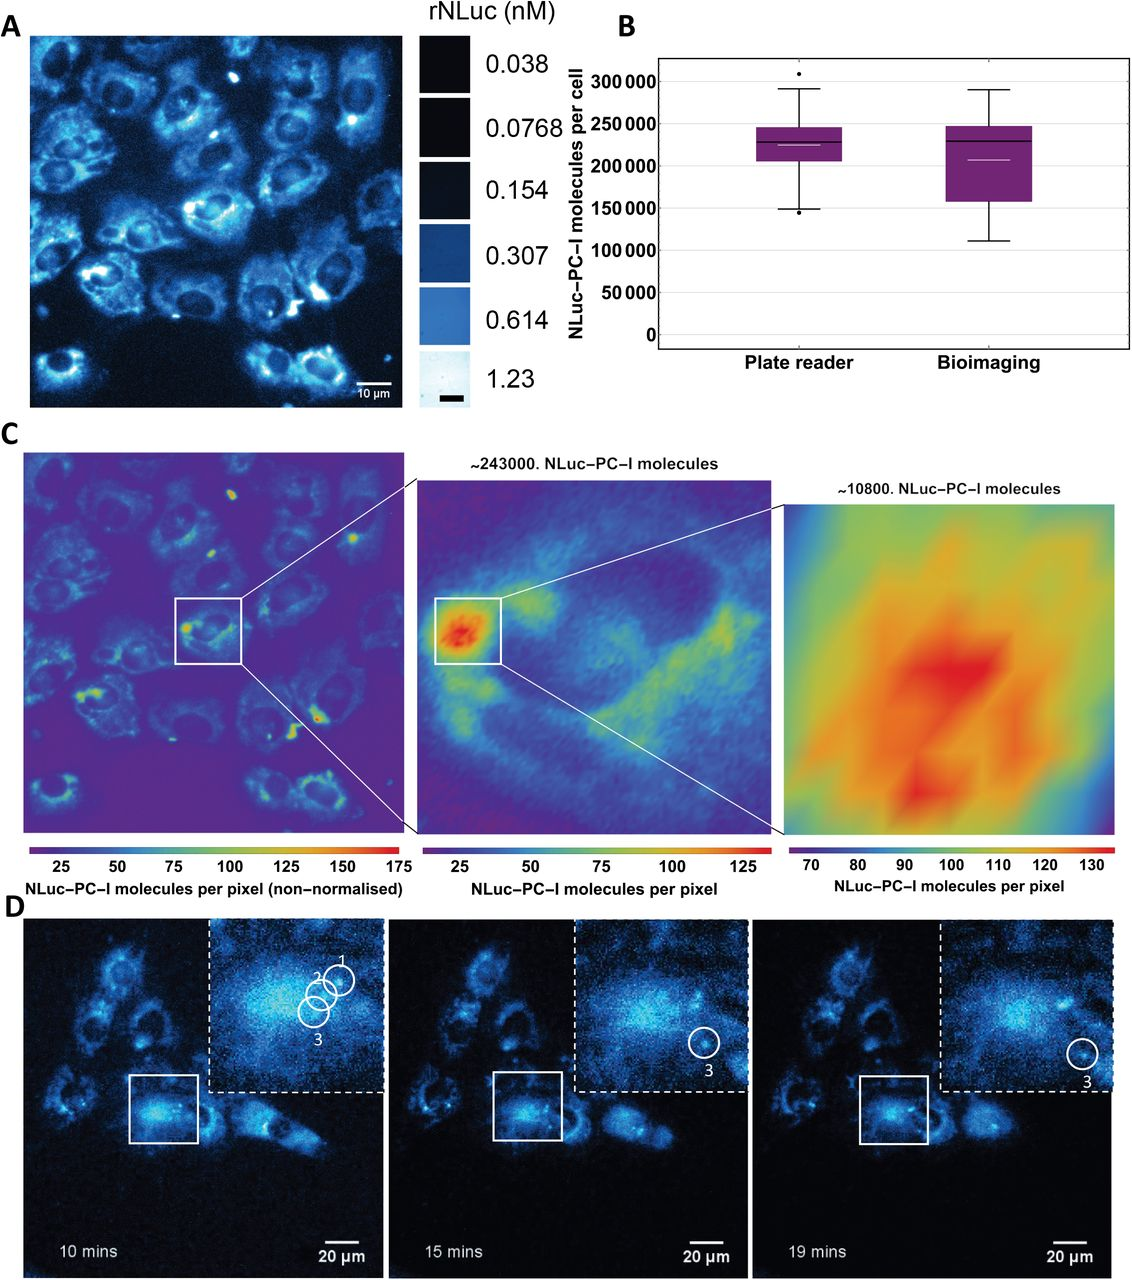 Heatmaps of 96-well plates seeded with different numbers of nluc::Col1a2 cells. The colour scale (right) indicates the number of counts in each well. Three plates were compared, clear (A) , black (B) and white (C) . Cells were seed in triplicate as indicated. A) In clear plates the spill over of luminescence could be observed with large numbers of cells, indicated by significant luminescence being recorded in empty wells neighbouring wells containing cells. B) Black plates limited spill over of signal between wells but also suppressed luminescence in the wells. C) White plates limited spill over but also enhanced sensitivity of detection.